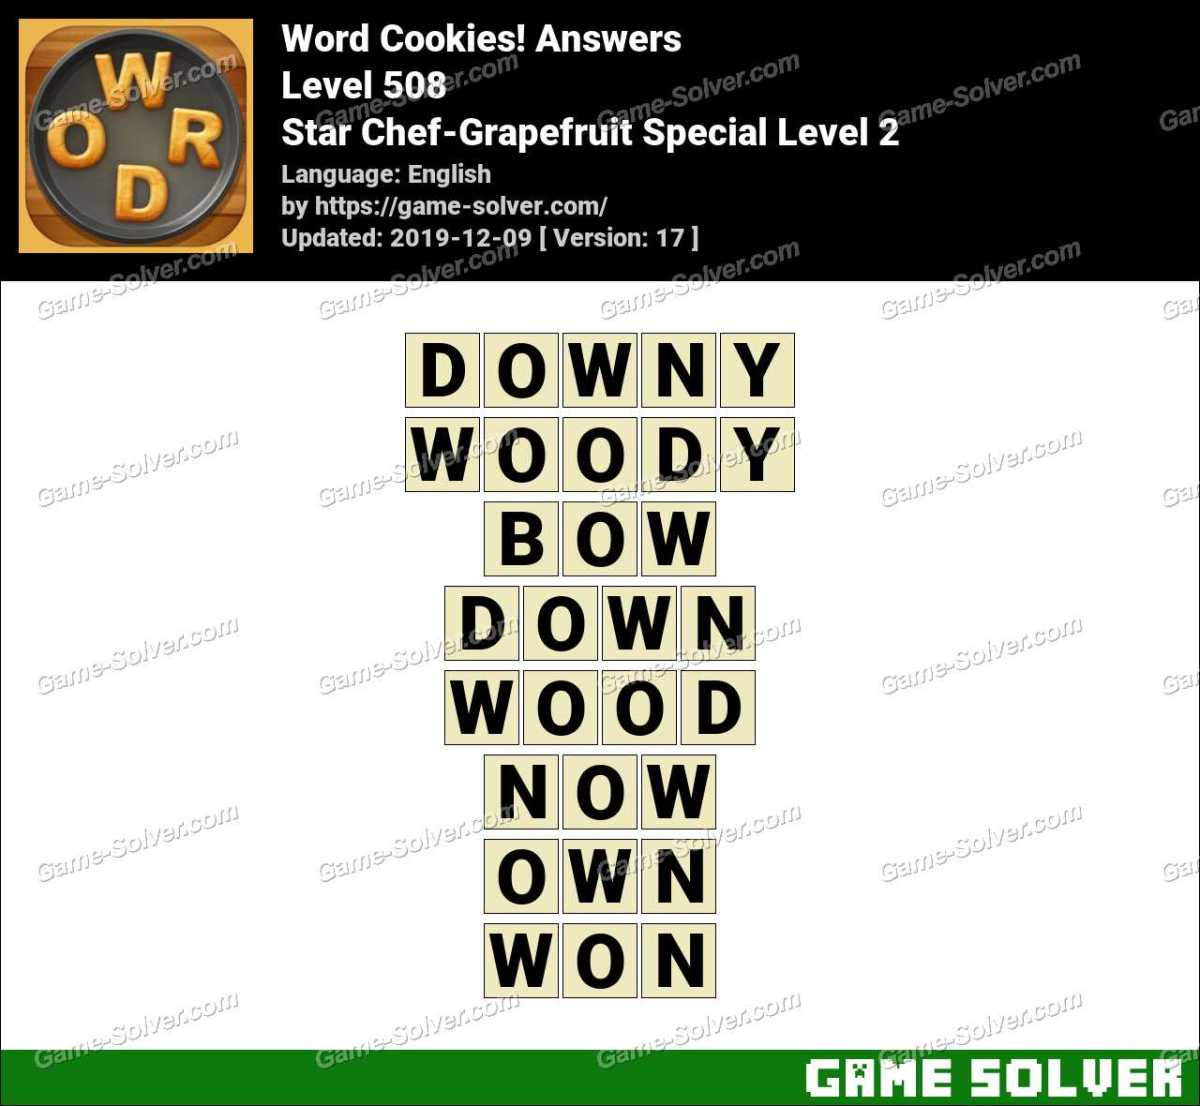 Word Cookies Star Chef-Grapefruit Special Level 2 Answers